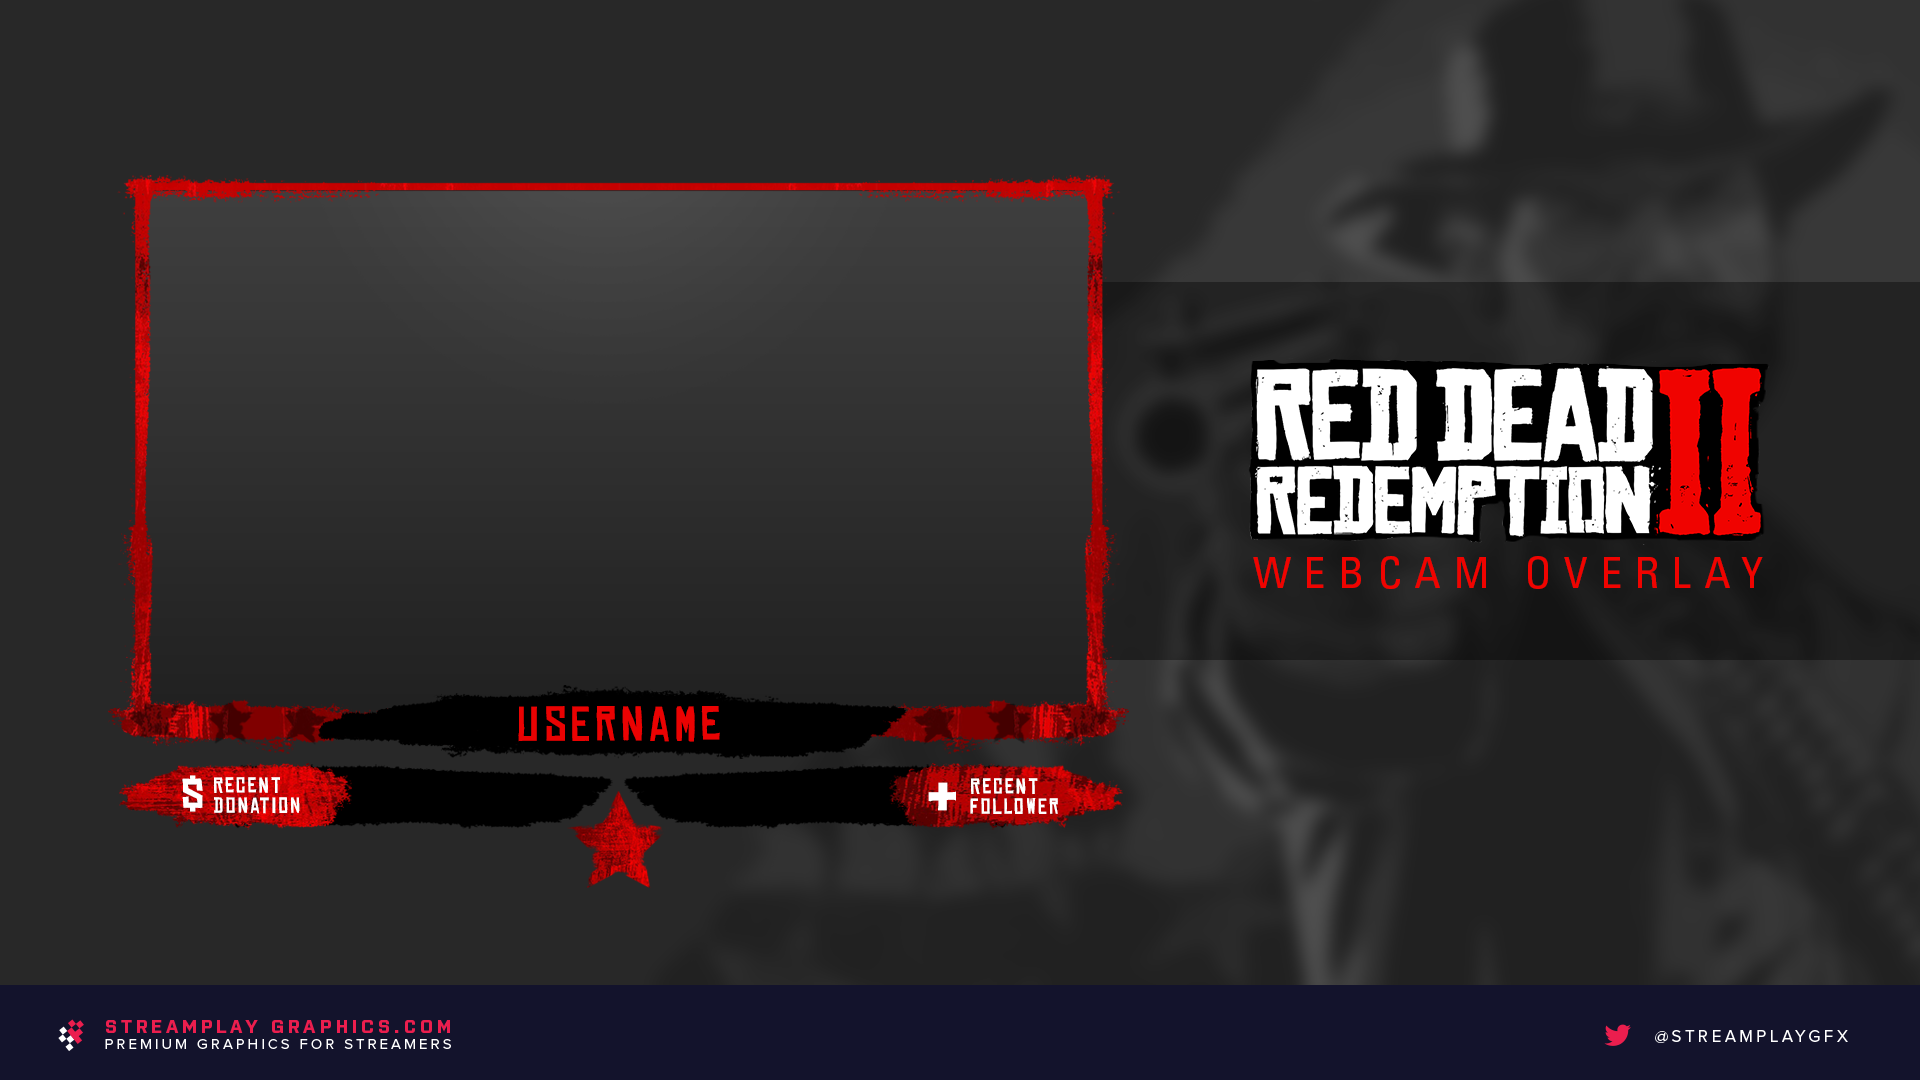 red dead redemption themed webcam overlay